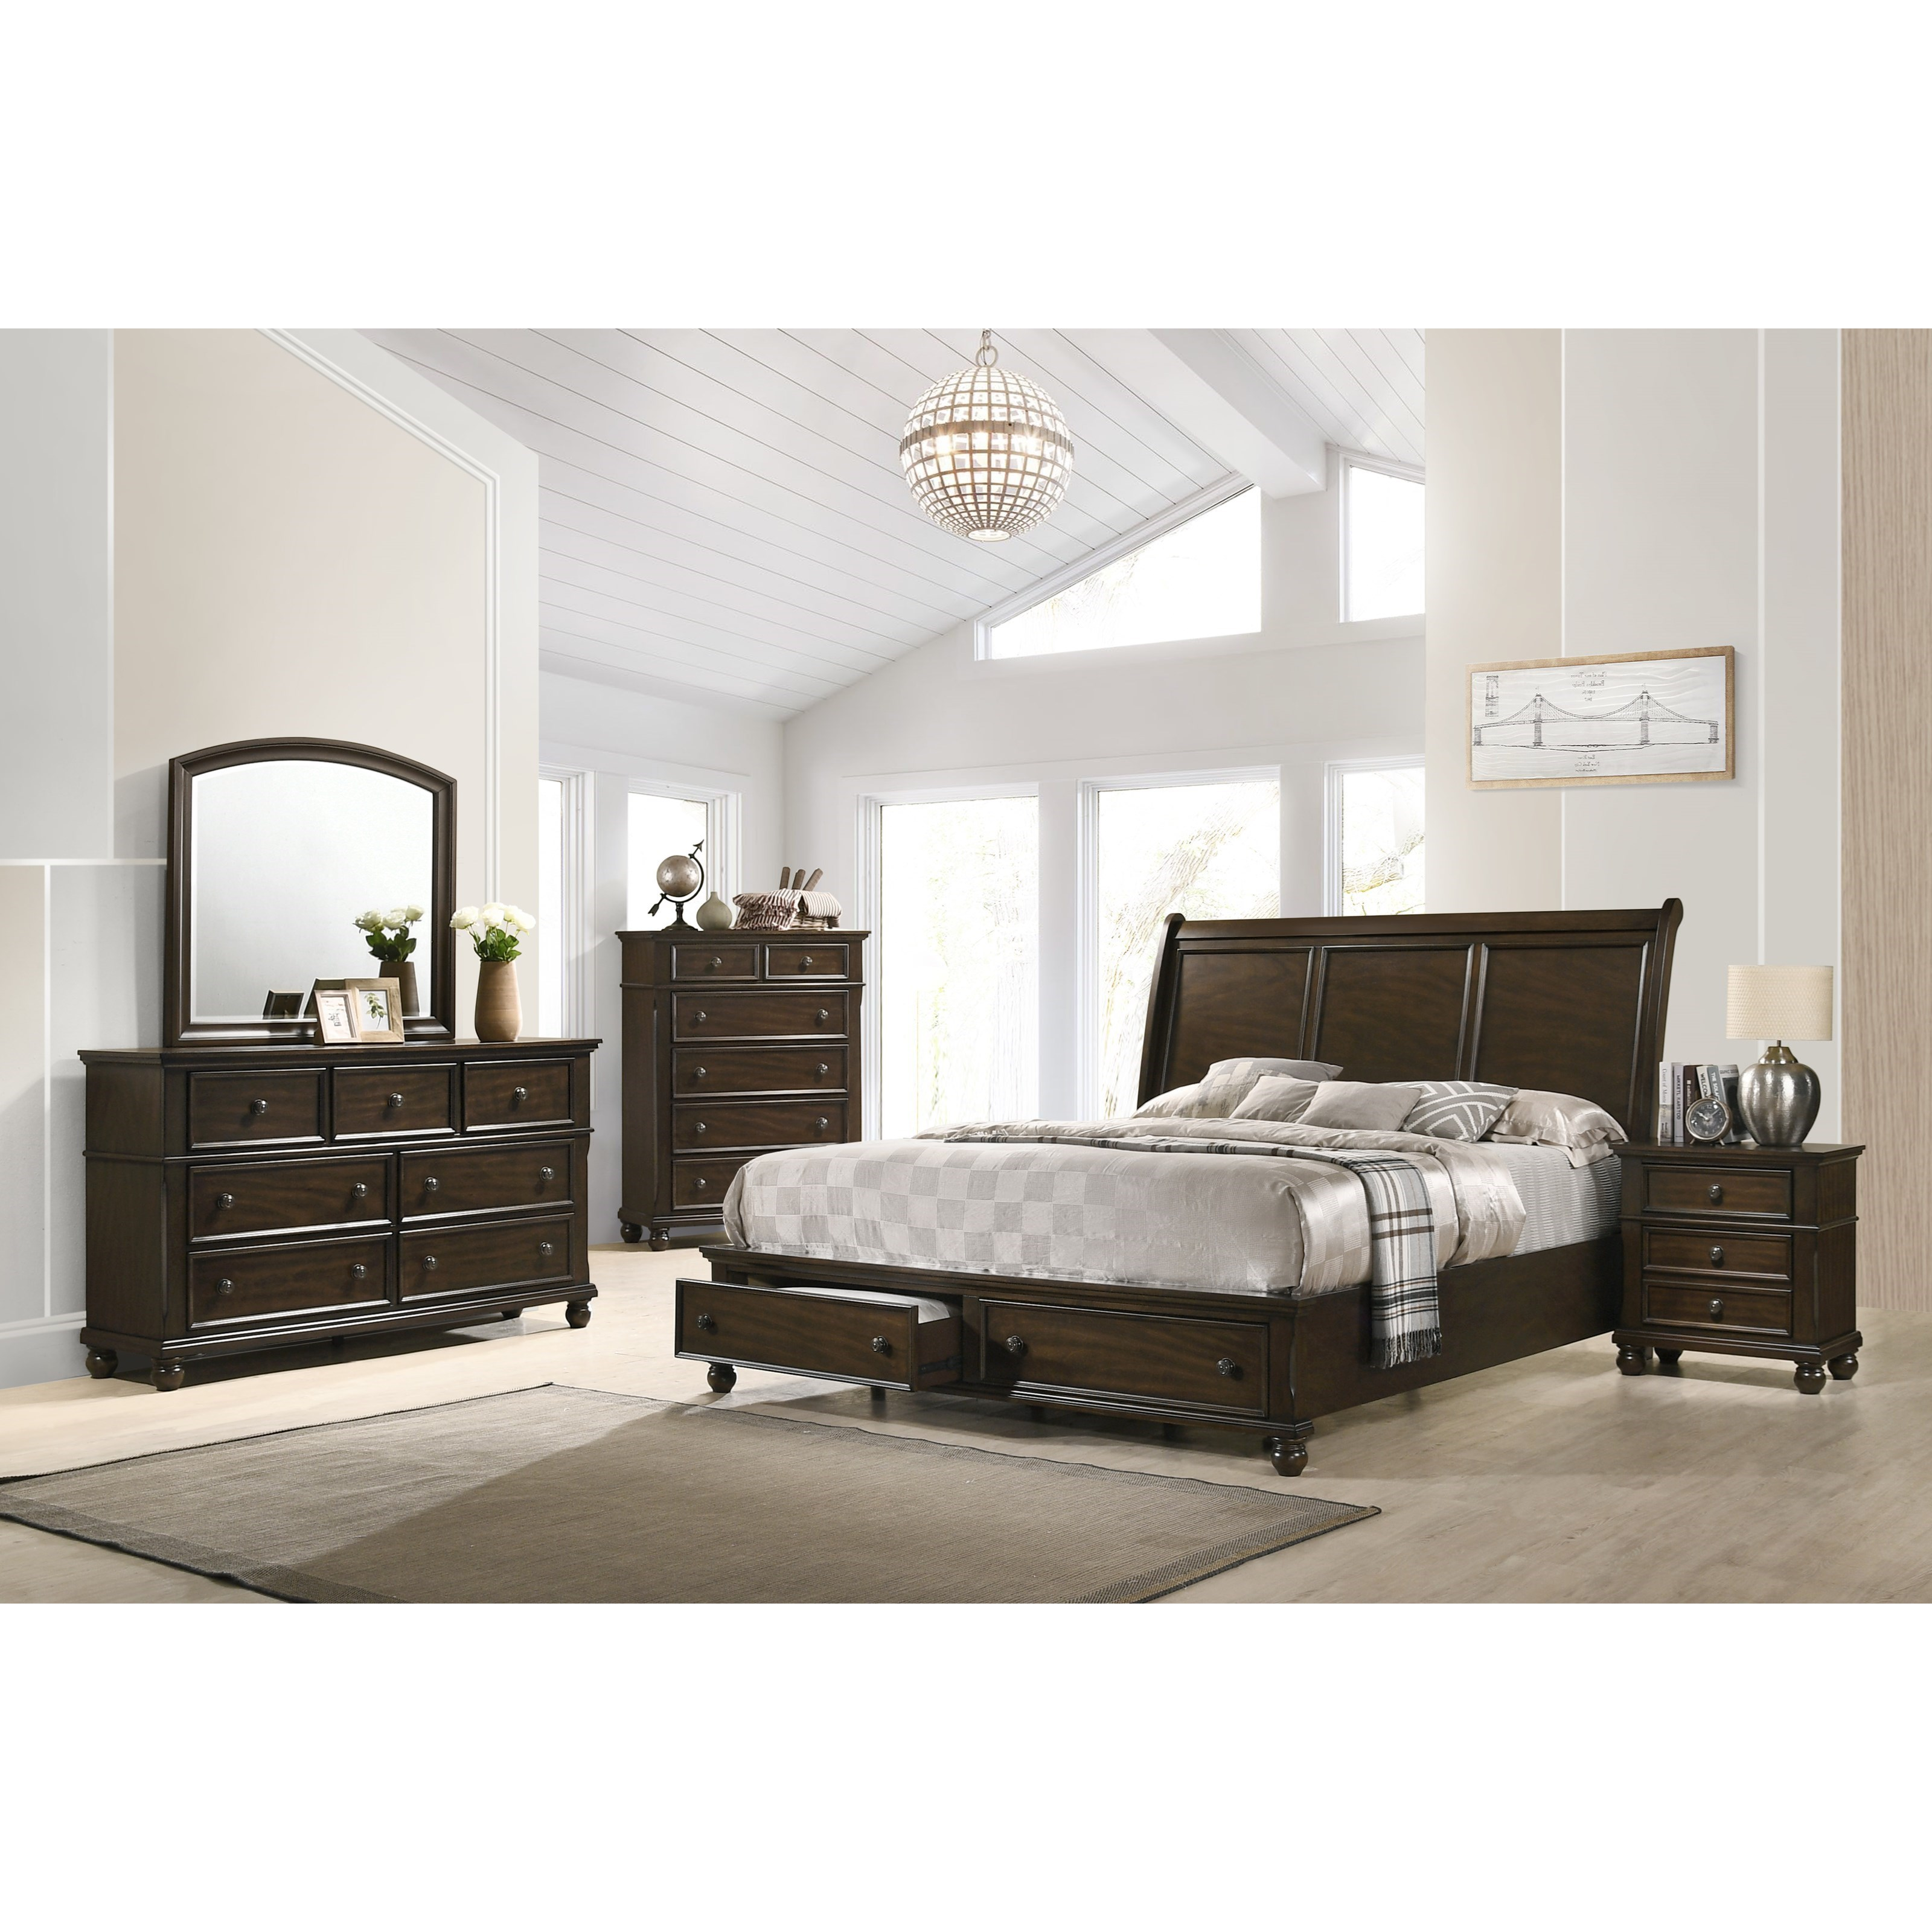 Lara King Bedroom Group by Crown Mark at Northeast Factory Direct